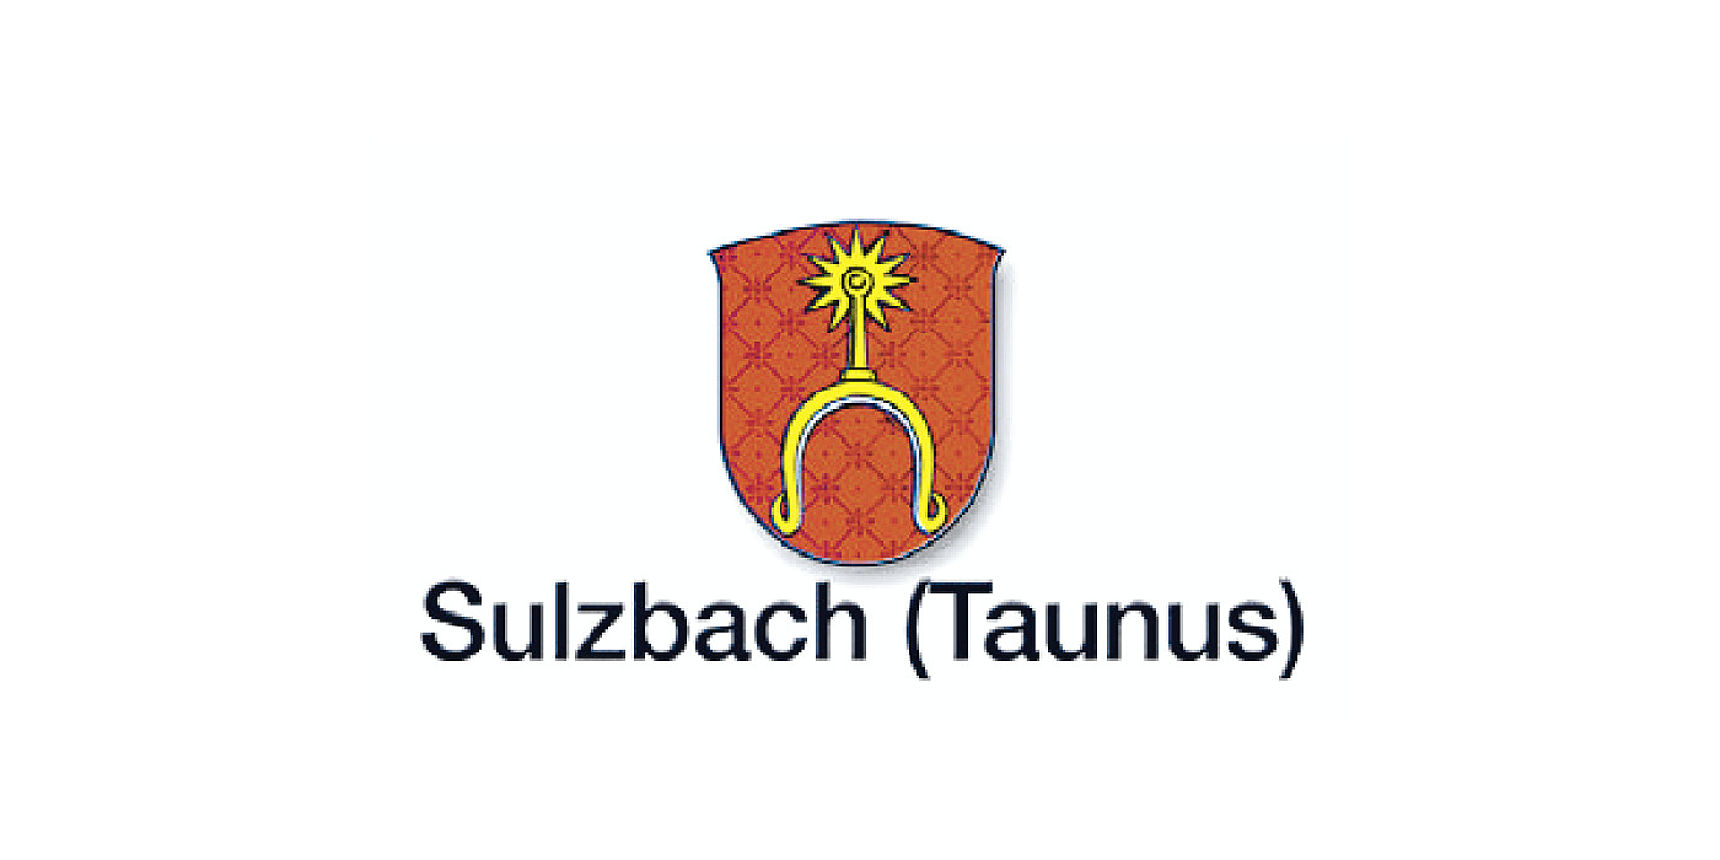 [Translate to English:] Logo Sulzbach